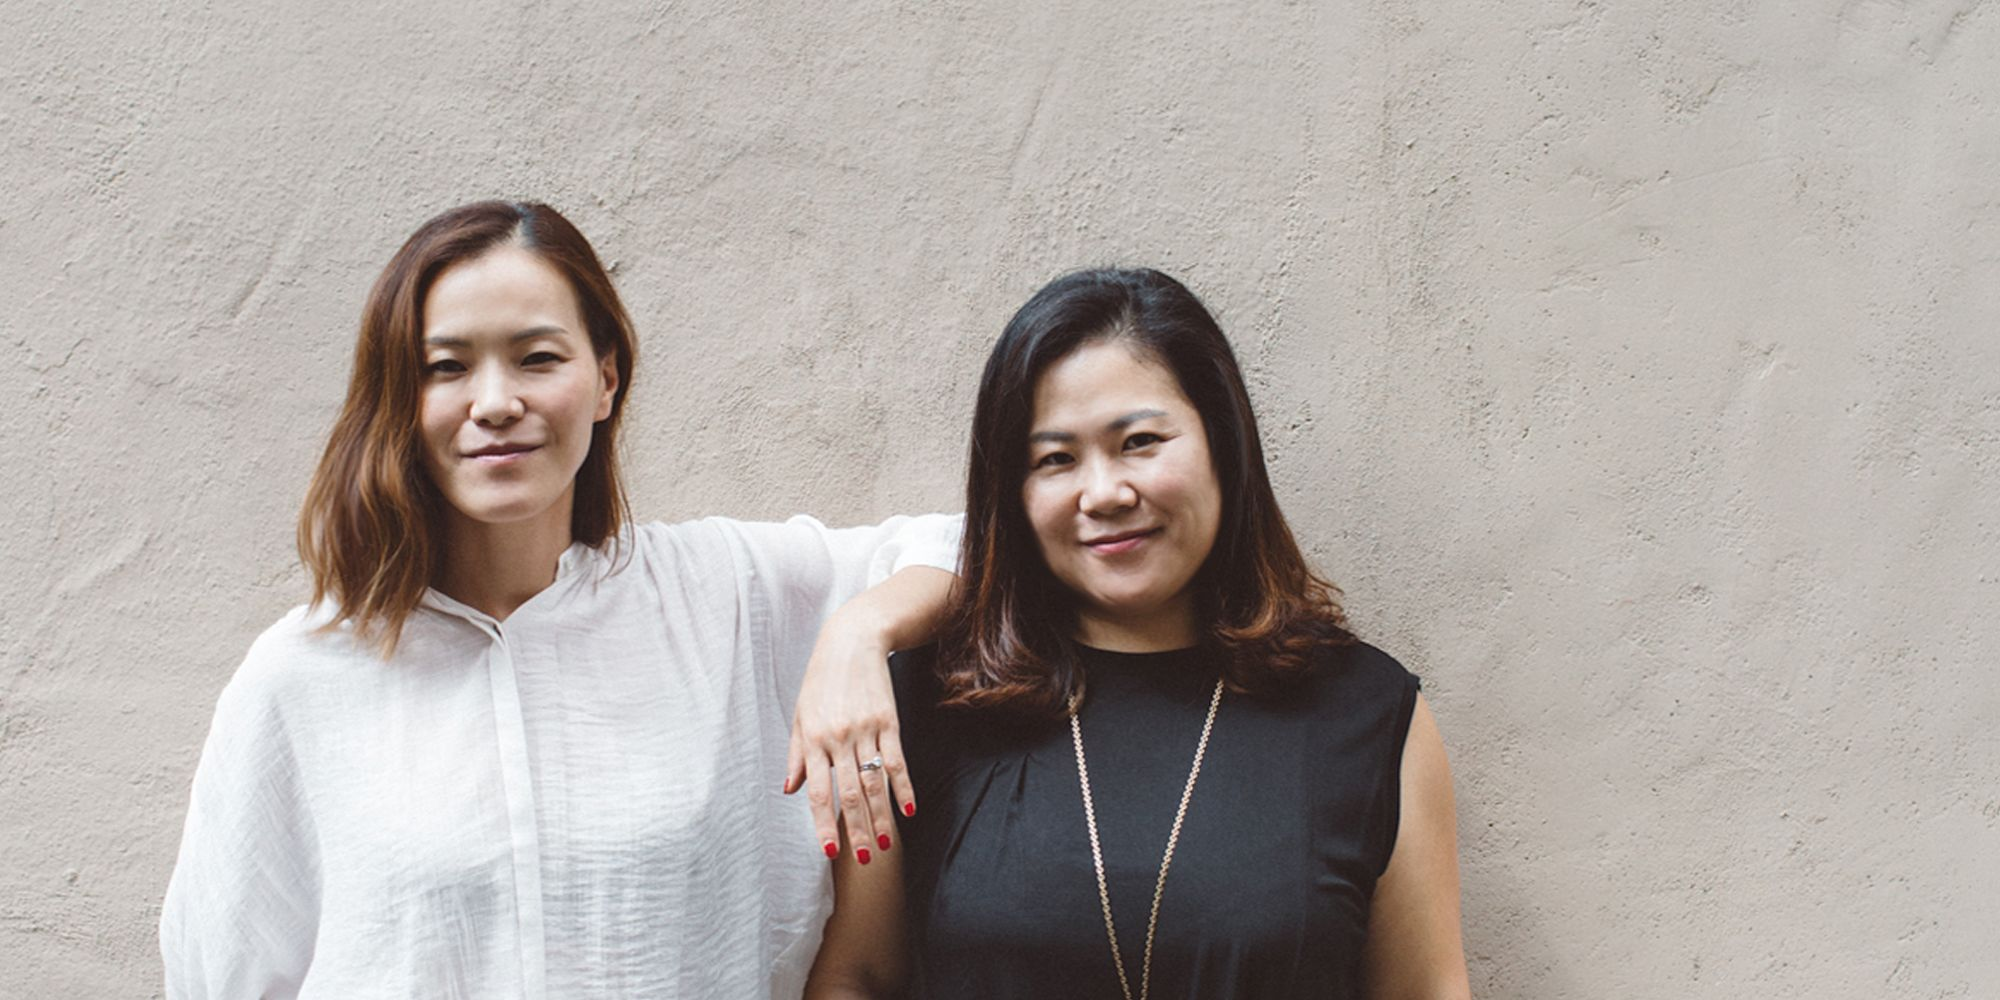 Ohlolly Is The Little E-Commerce Engine That Could In The K-Beauty Segment